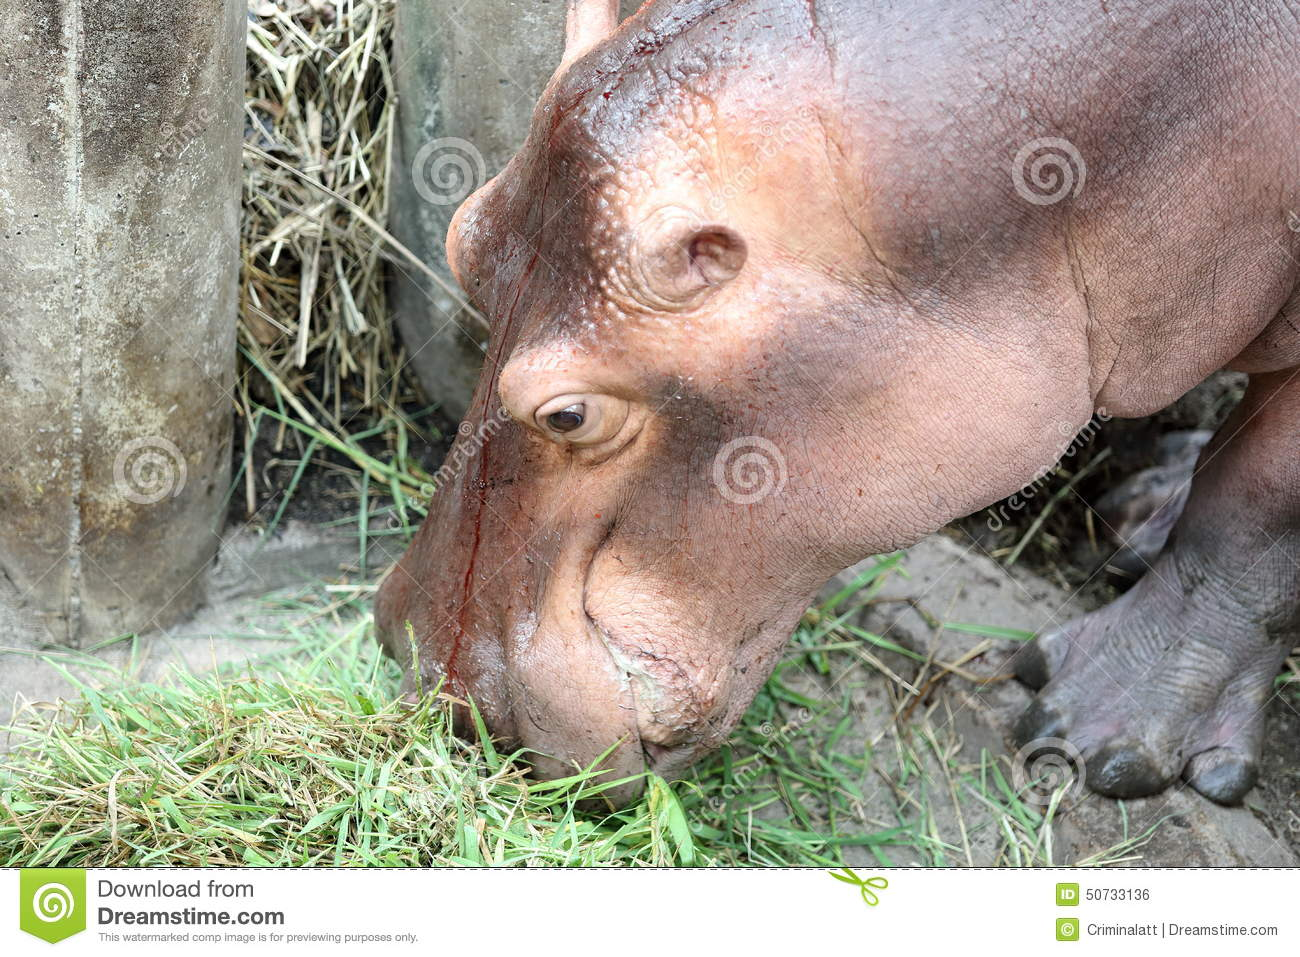 Eating Habits - All I Want Is A Hippopotamus |Hippo Eating Grass